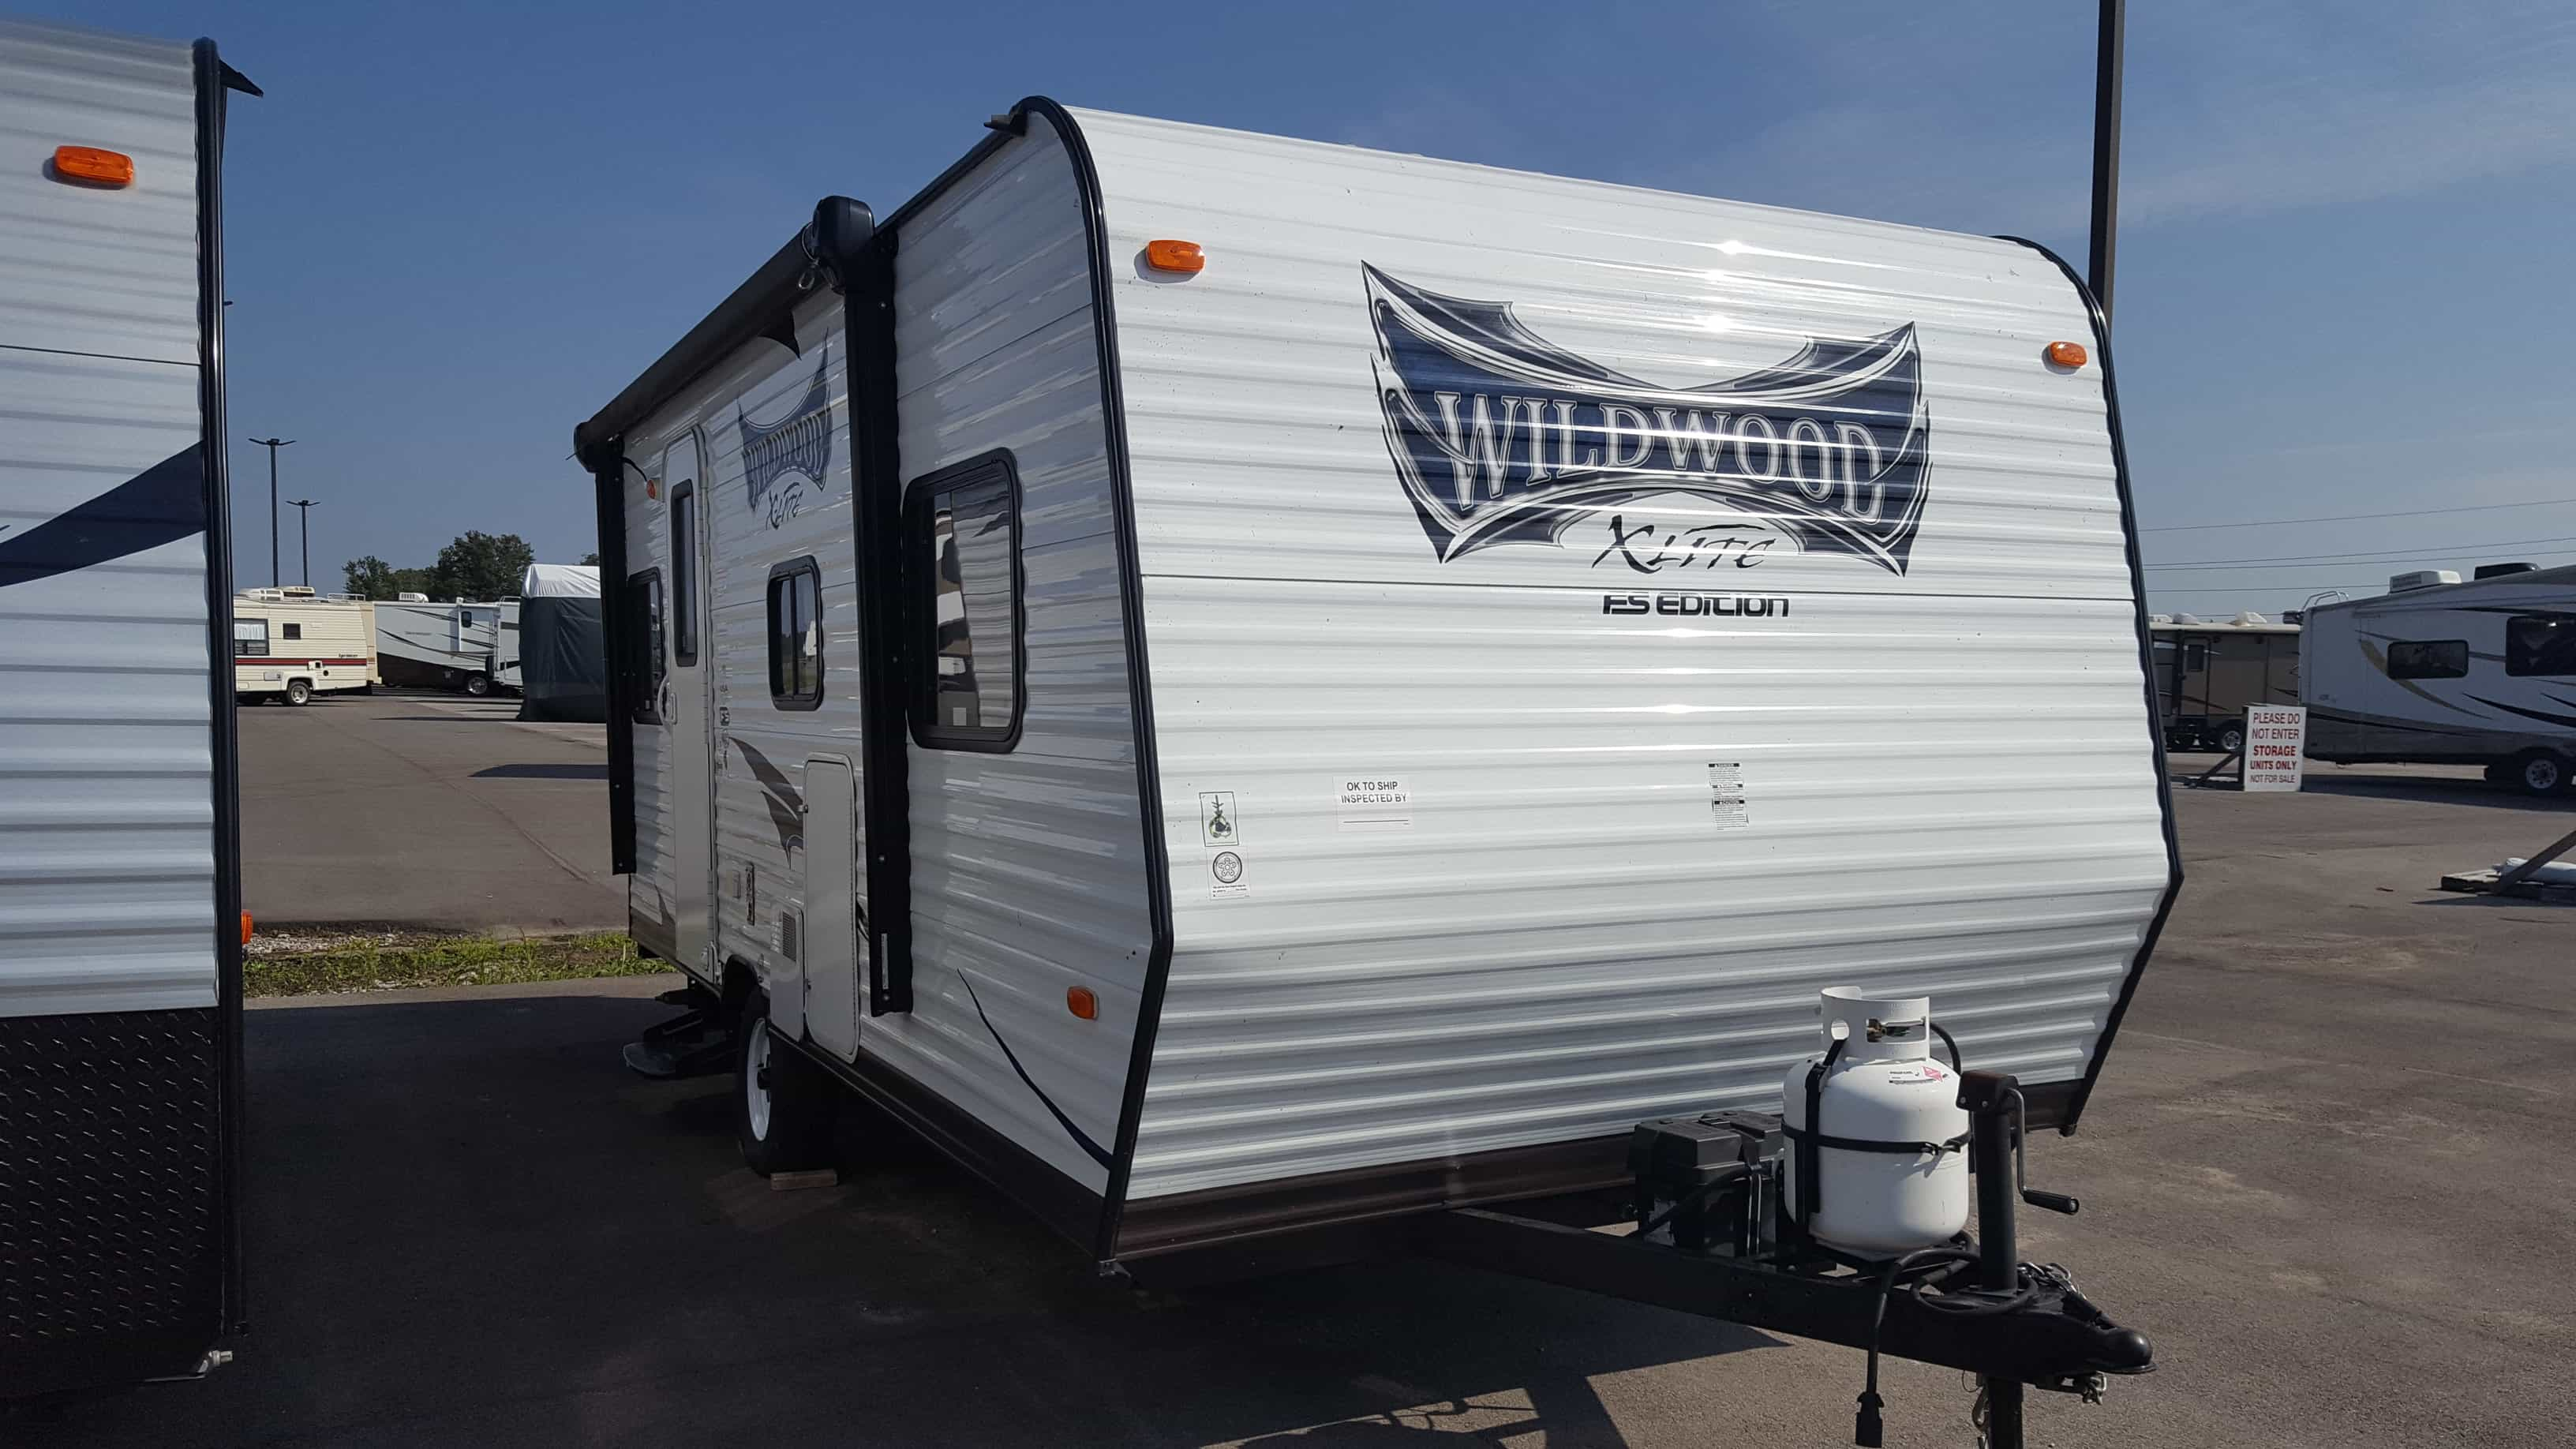 USED 2015 Forest River WILDWOOD XLITE 205RD - American RV